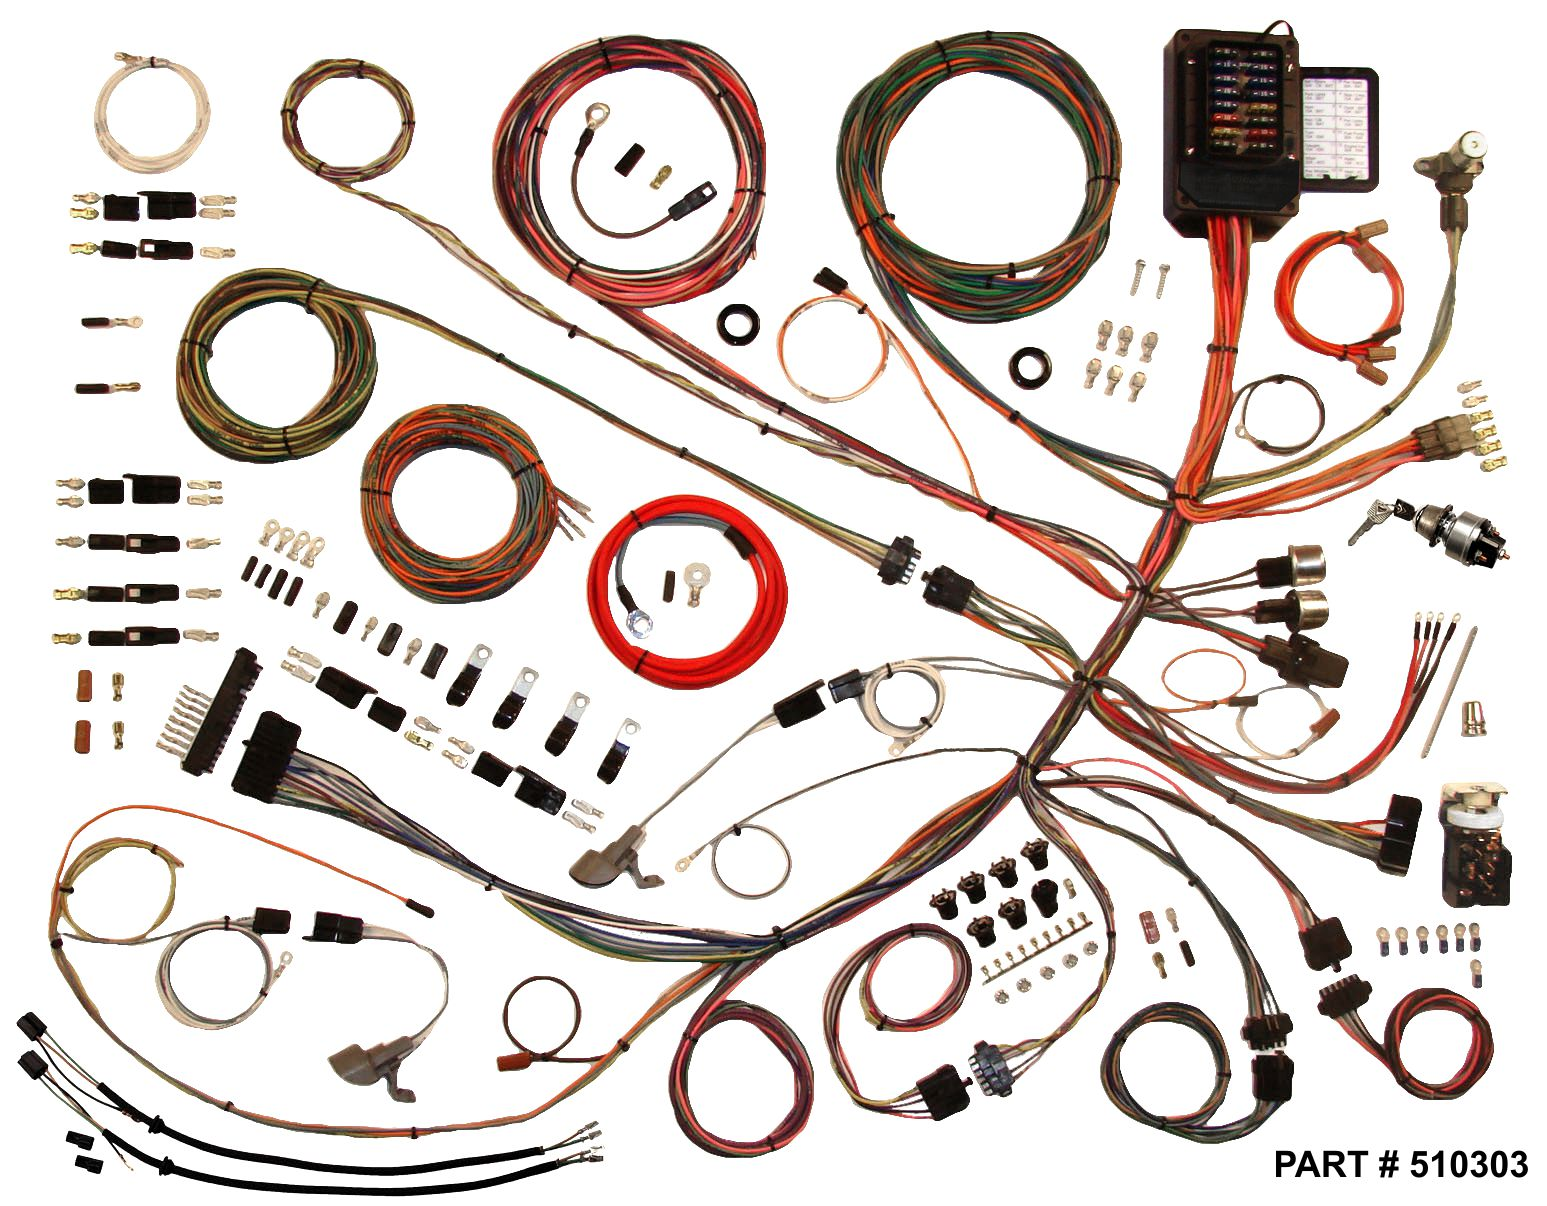 1953-56 Ford Truck RestoMod Wiring Harness System